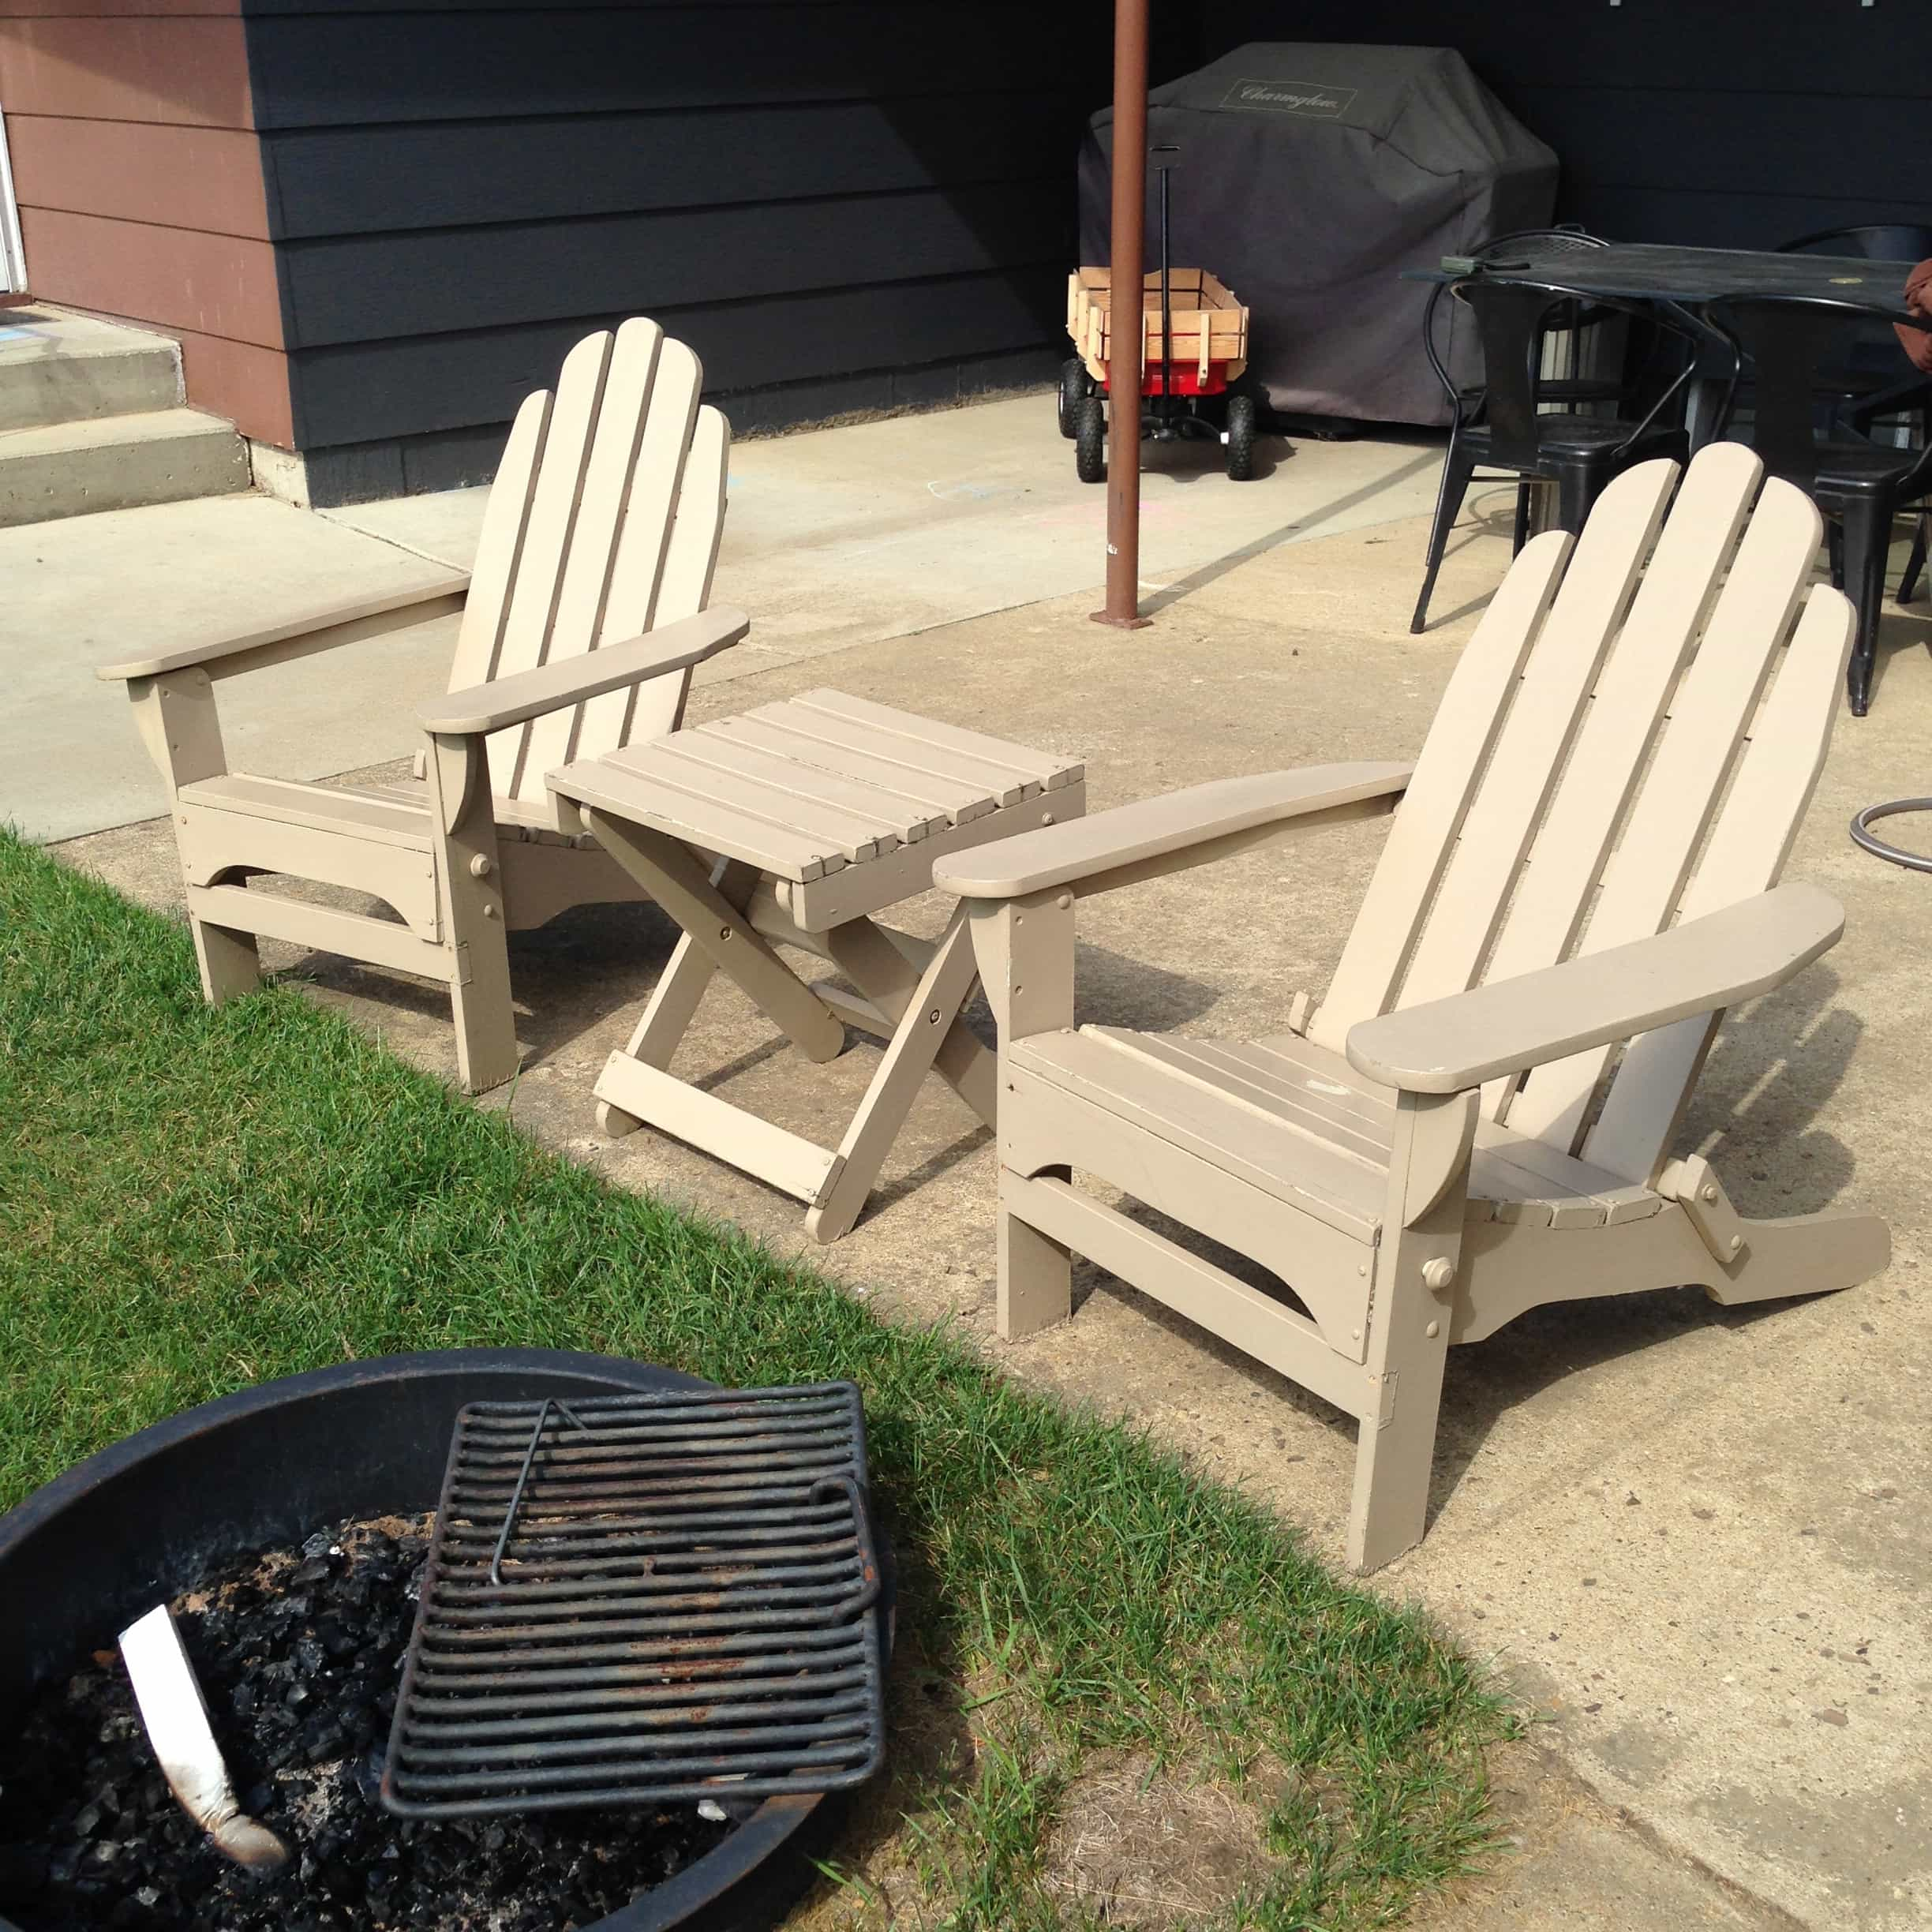 I Picked These Tan Peeling Adirondack Chairs And Table At A Garage Sale For  Only $20! Donu0027t Mind The Brown And Black Two Tone House In ...